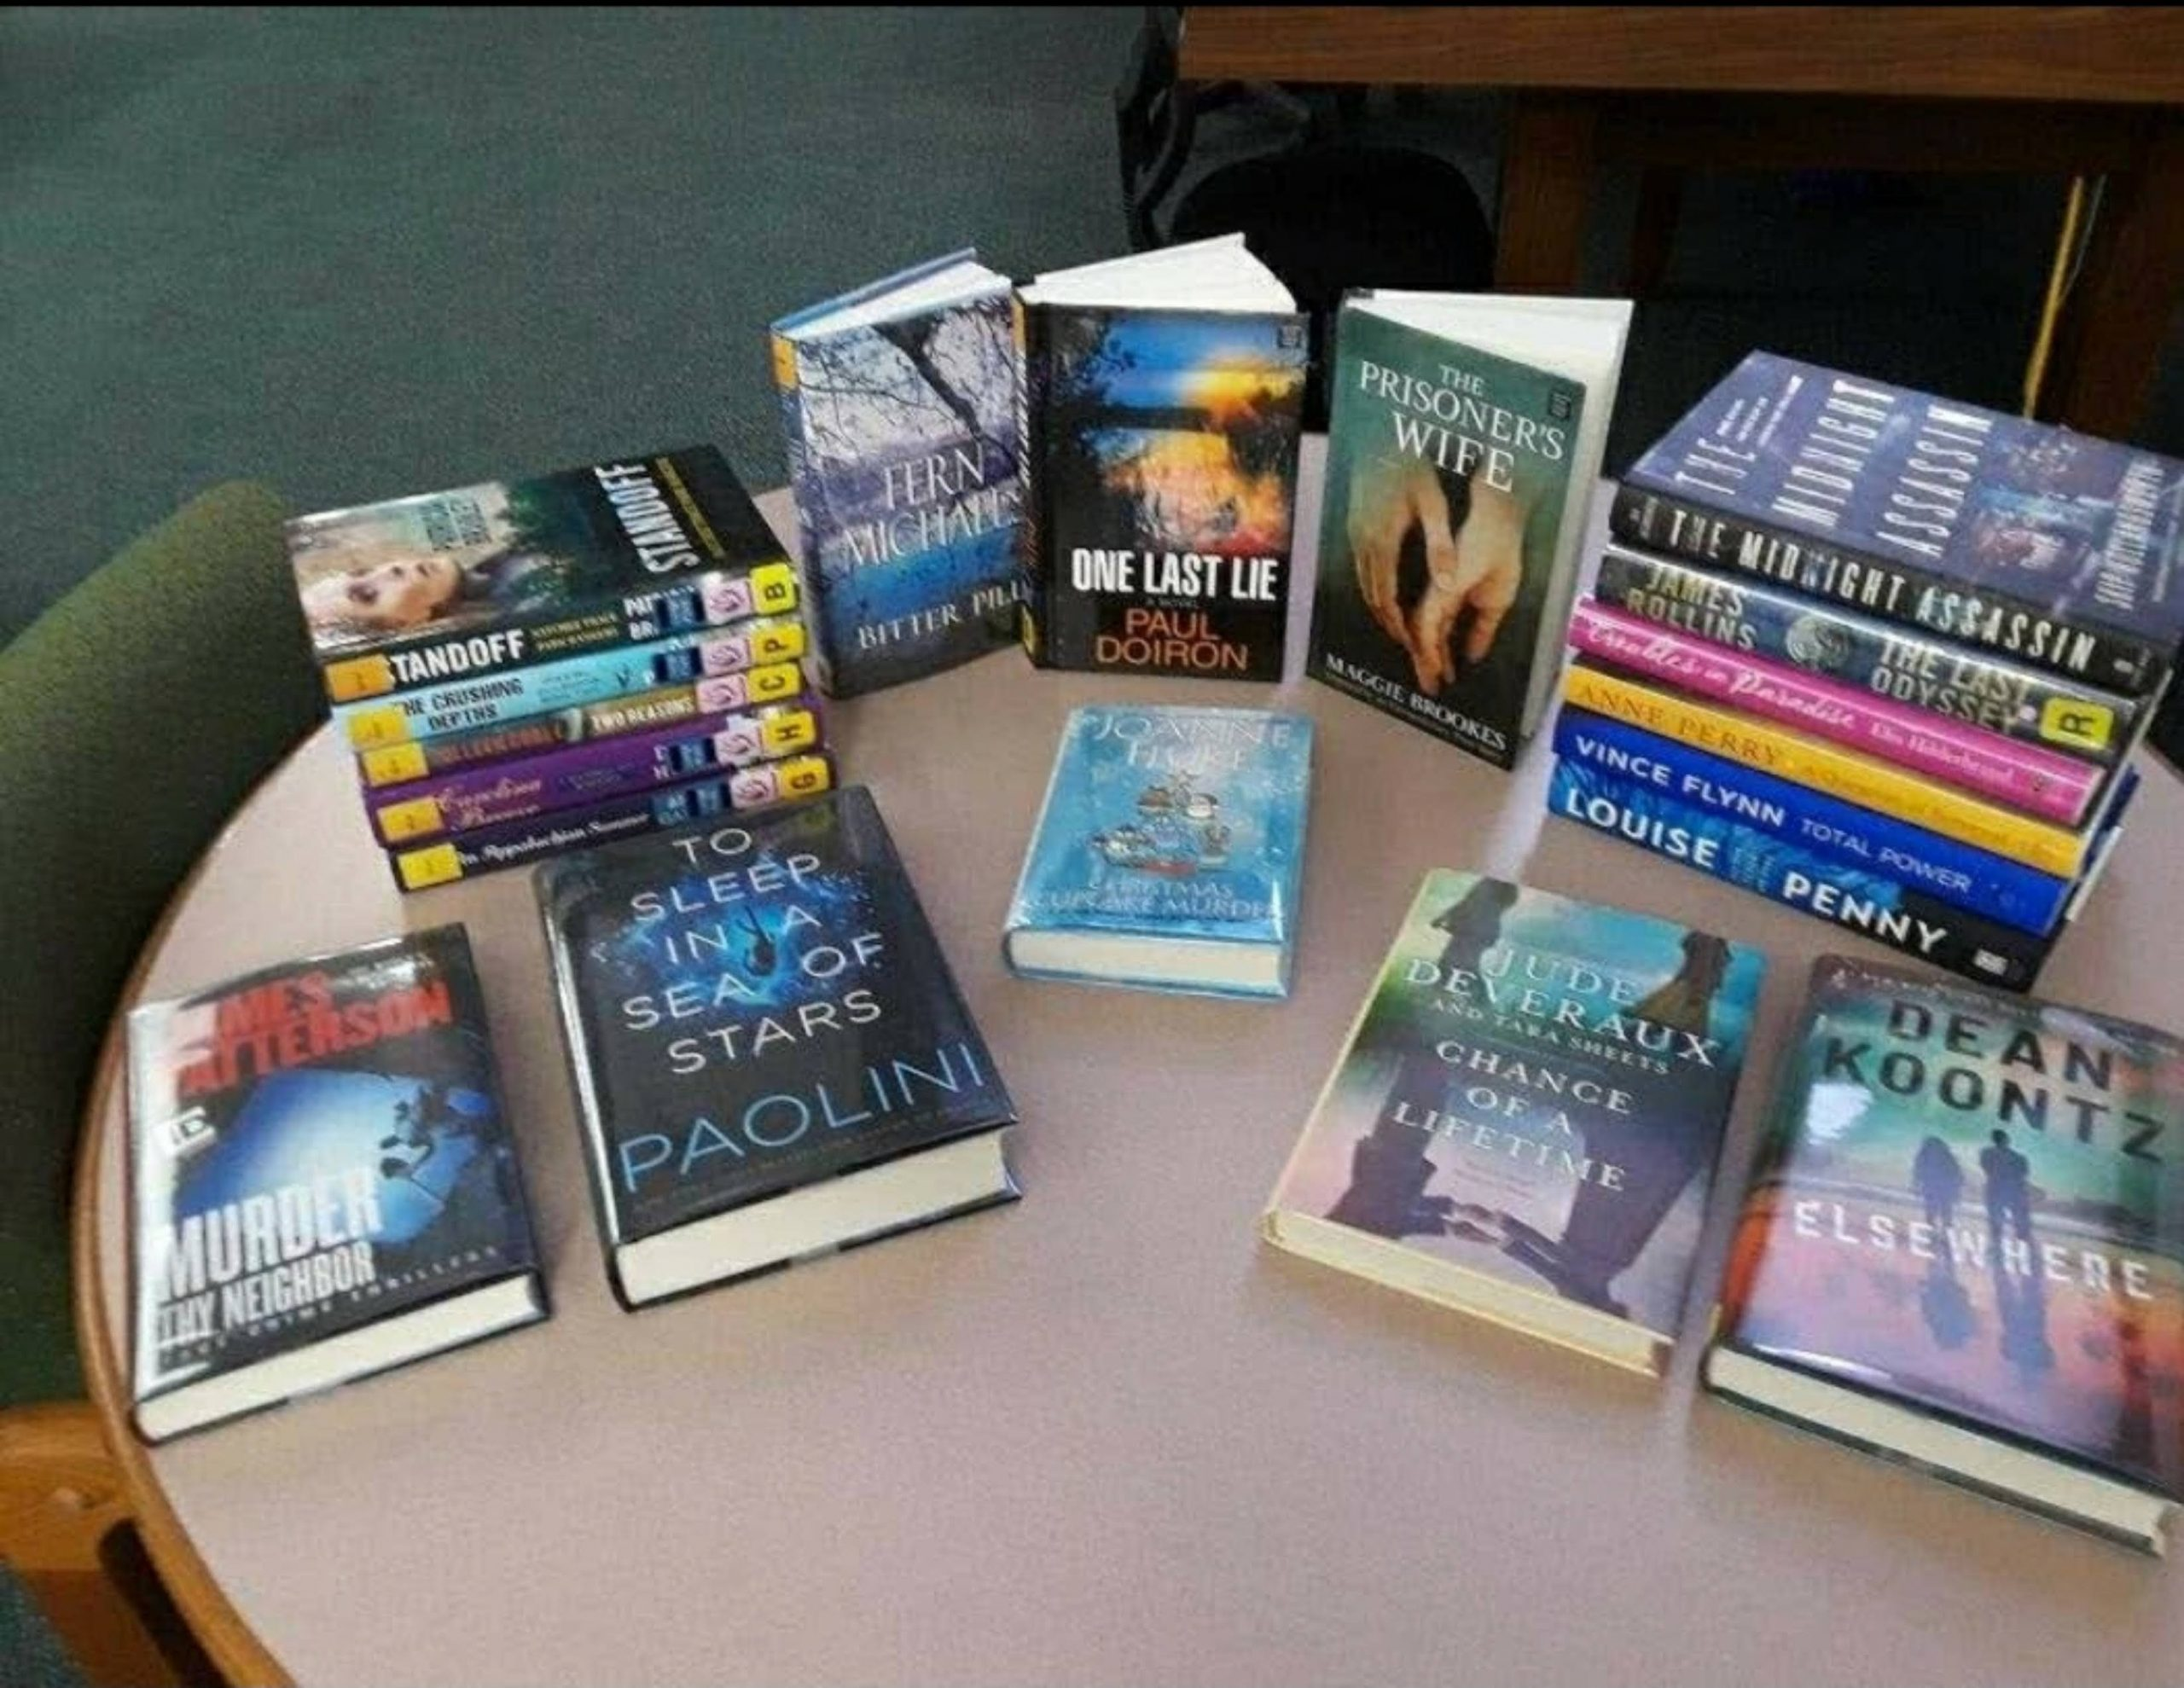 We have recently added new books in a vast array of genre's for your reading tastes.